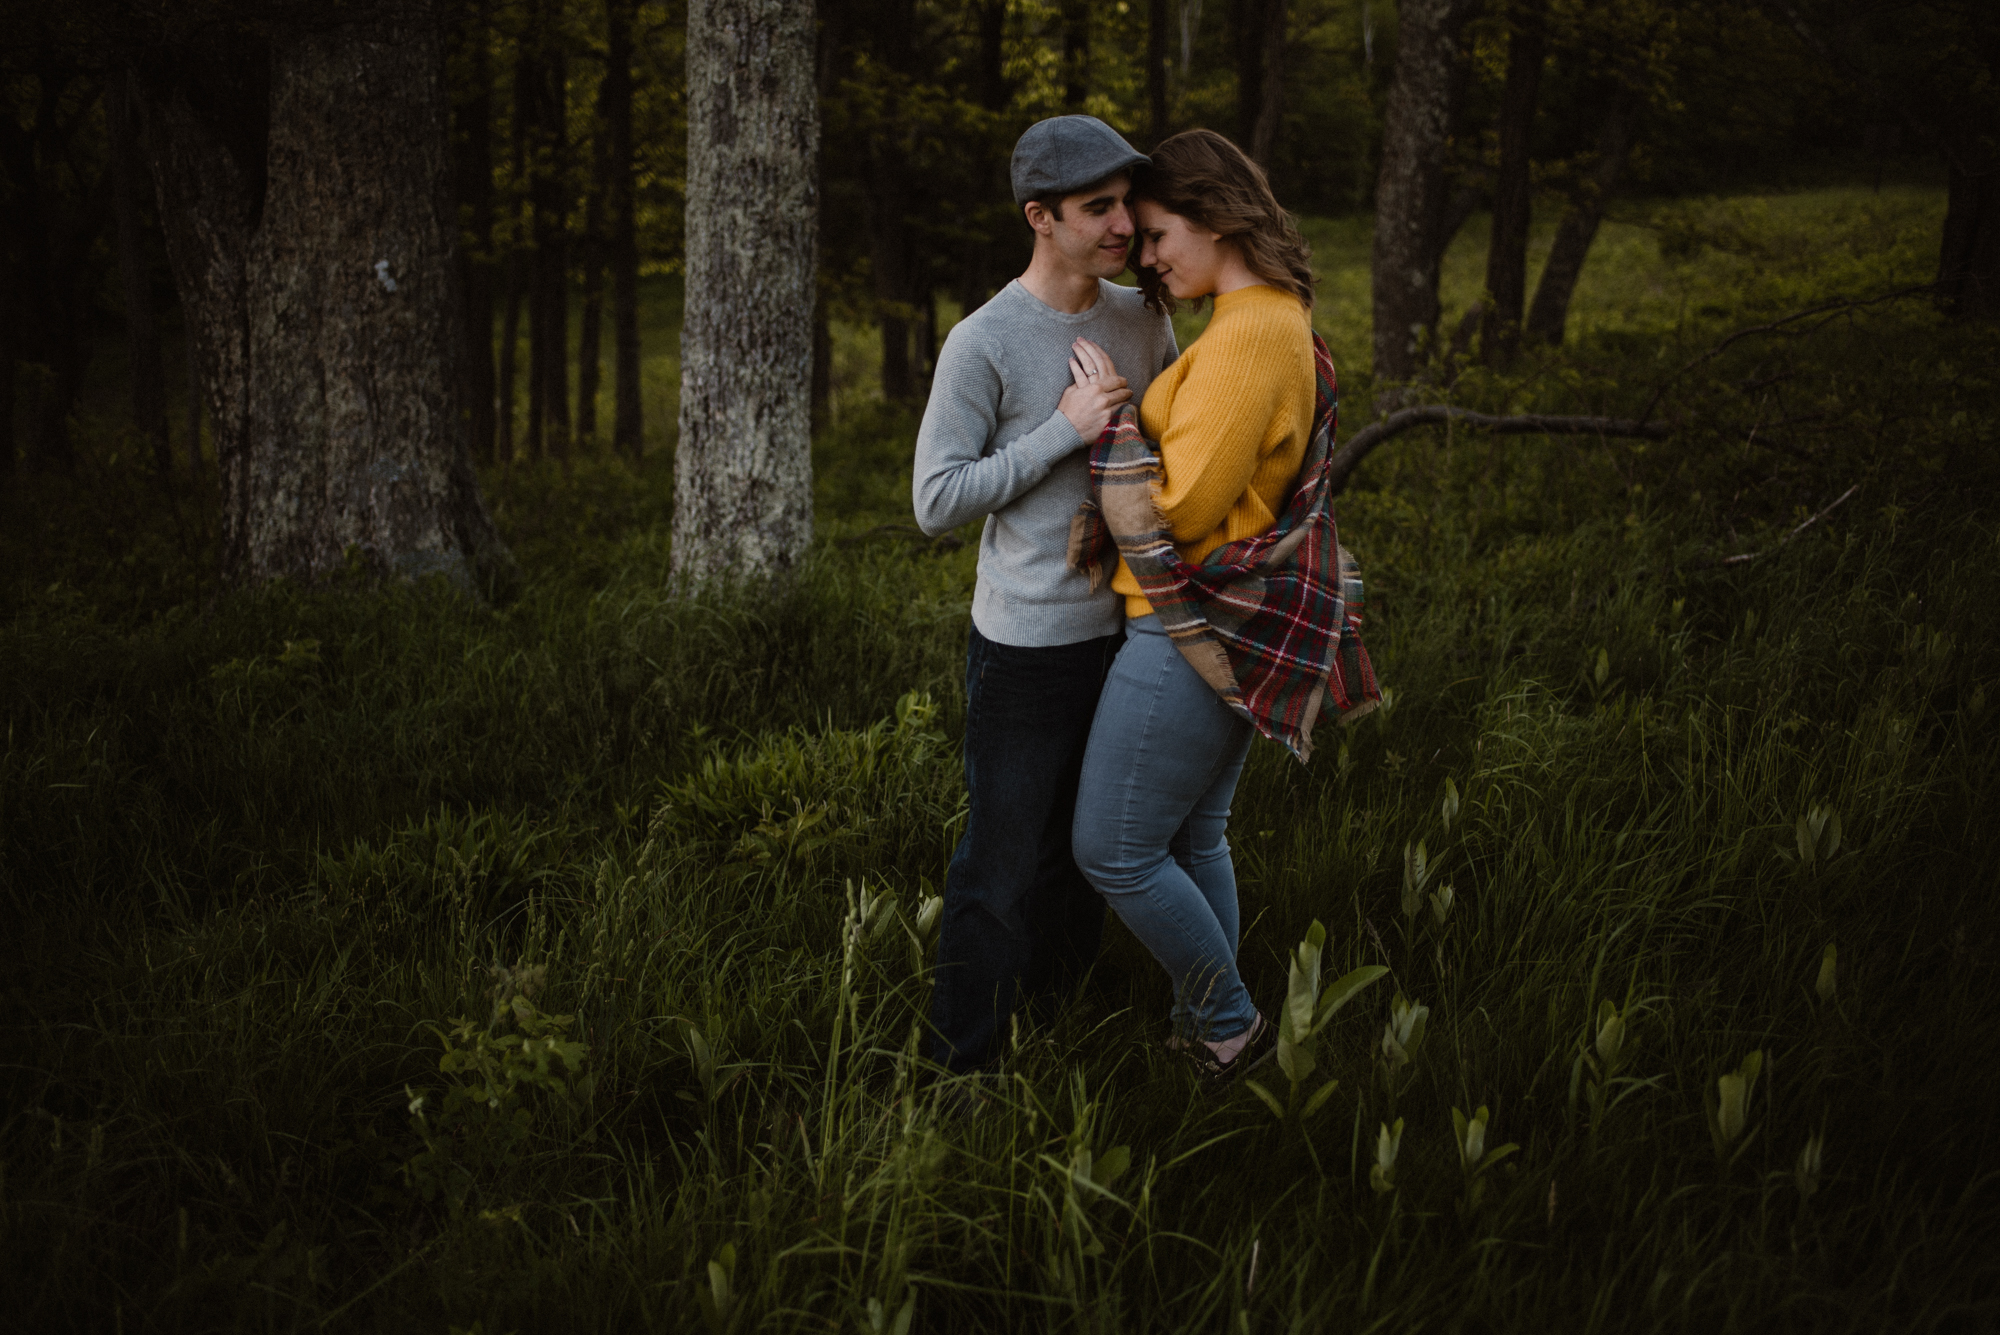 Sloane and Evan Sunrise Engagement Session in Shenandoah National Park - Things to Do in Luray Virginia - Adventurous Couple Photo Shoot White Sails Creative_21.jpg